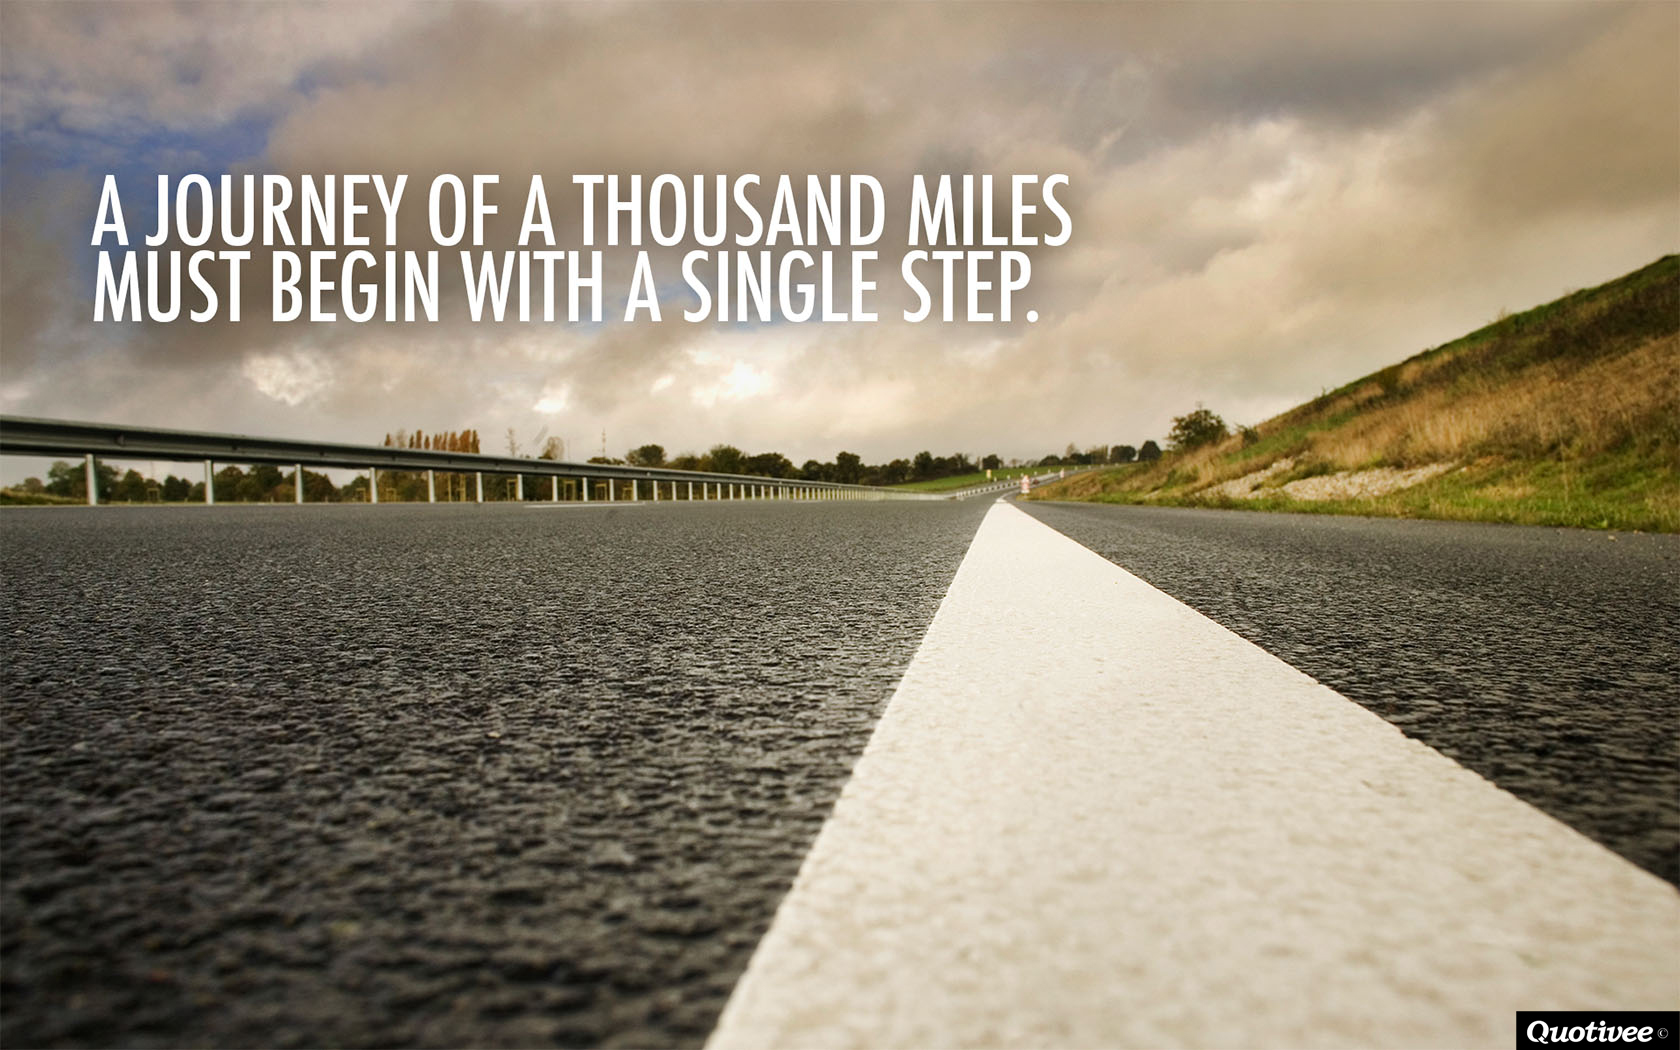 Suits Hd Wallpaper Quotes A Journey Of A Thousand Miles Inspirational Quotes